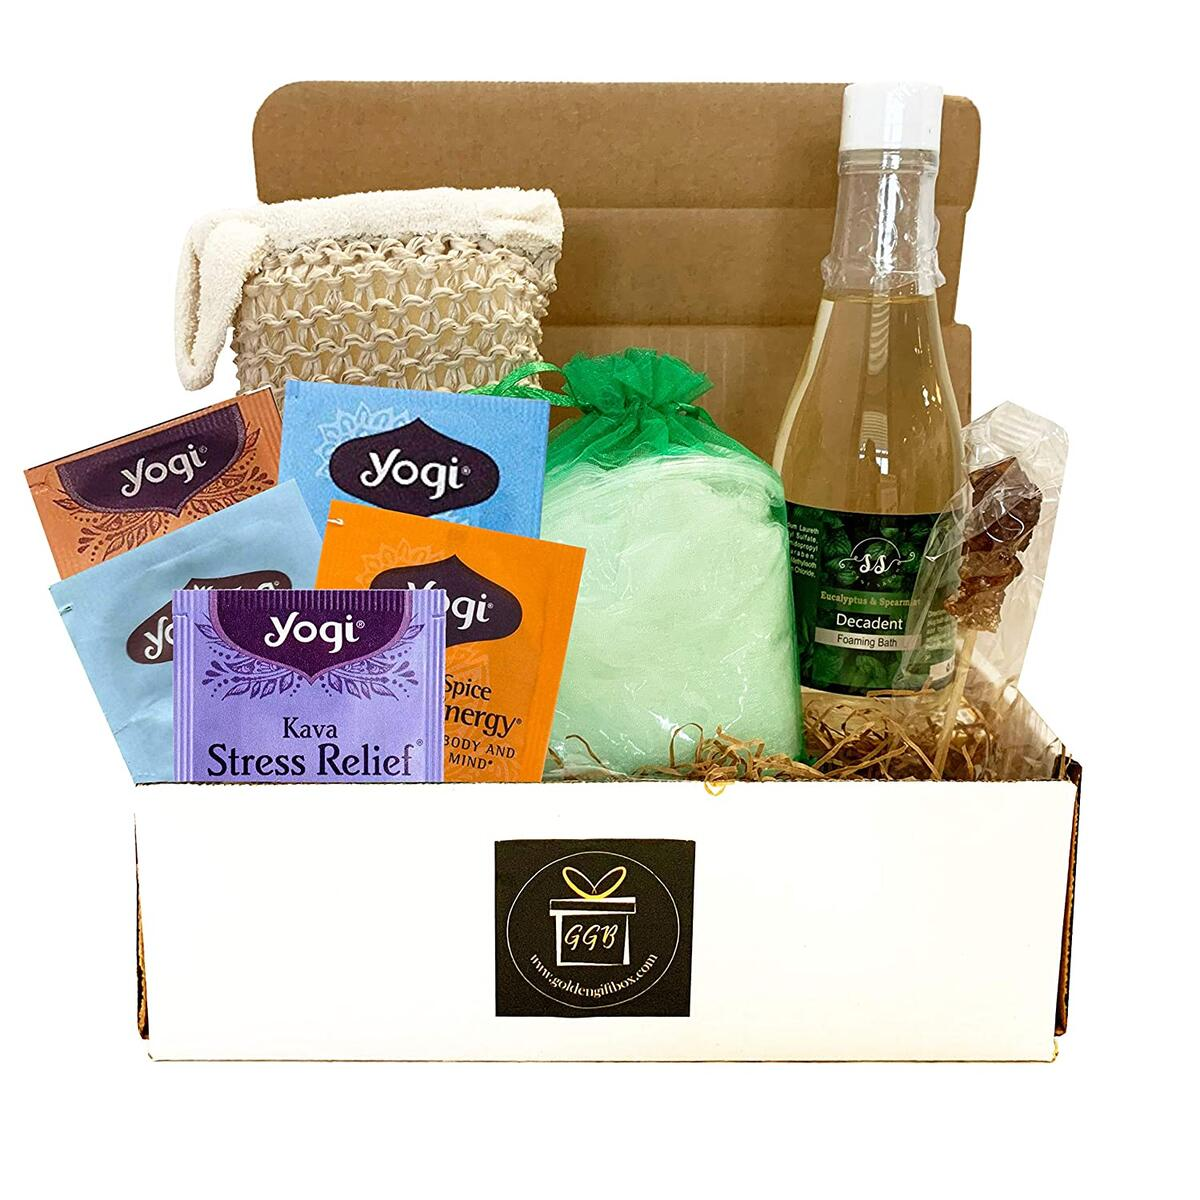 Home Spa Gift Basket For Women - CLASSIC EDITION - EUCALYPTUS SPEARMINT